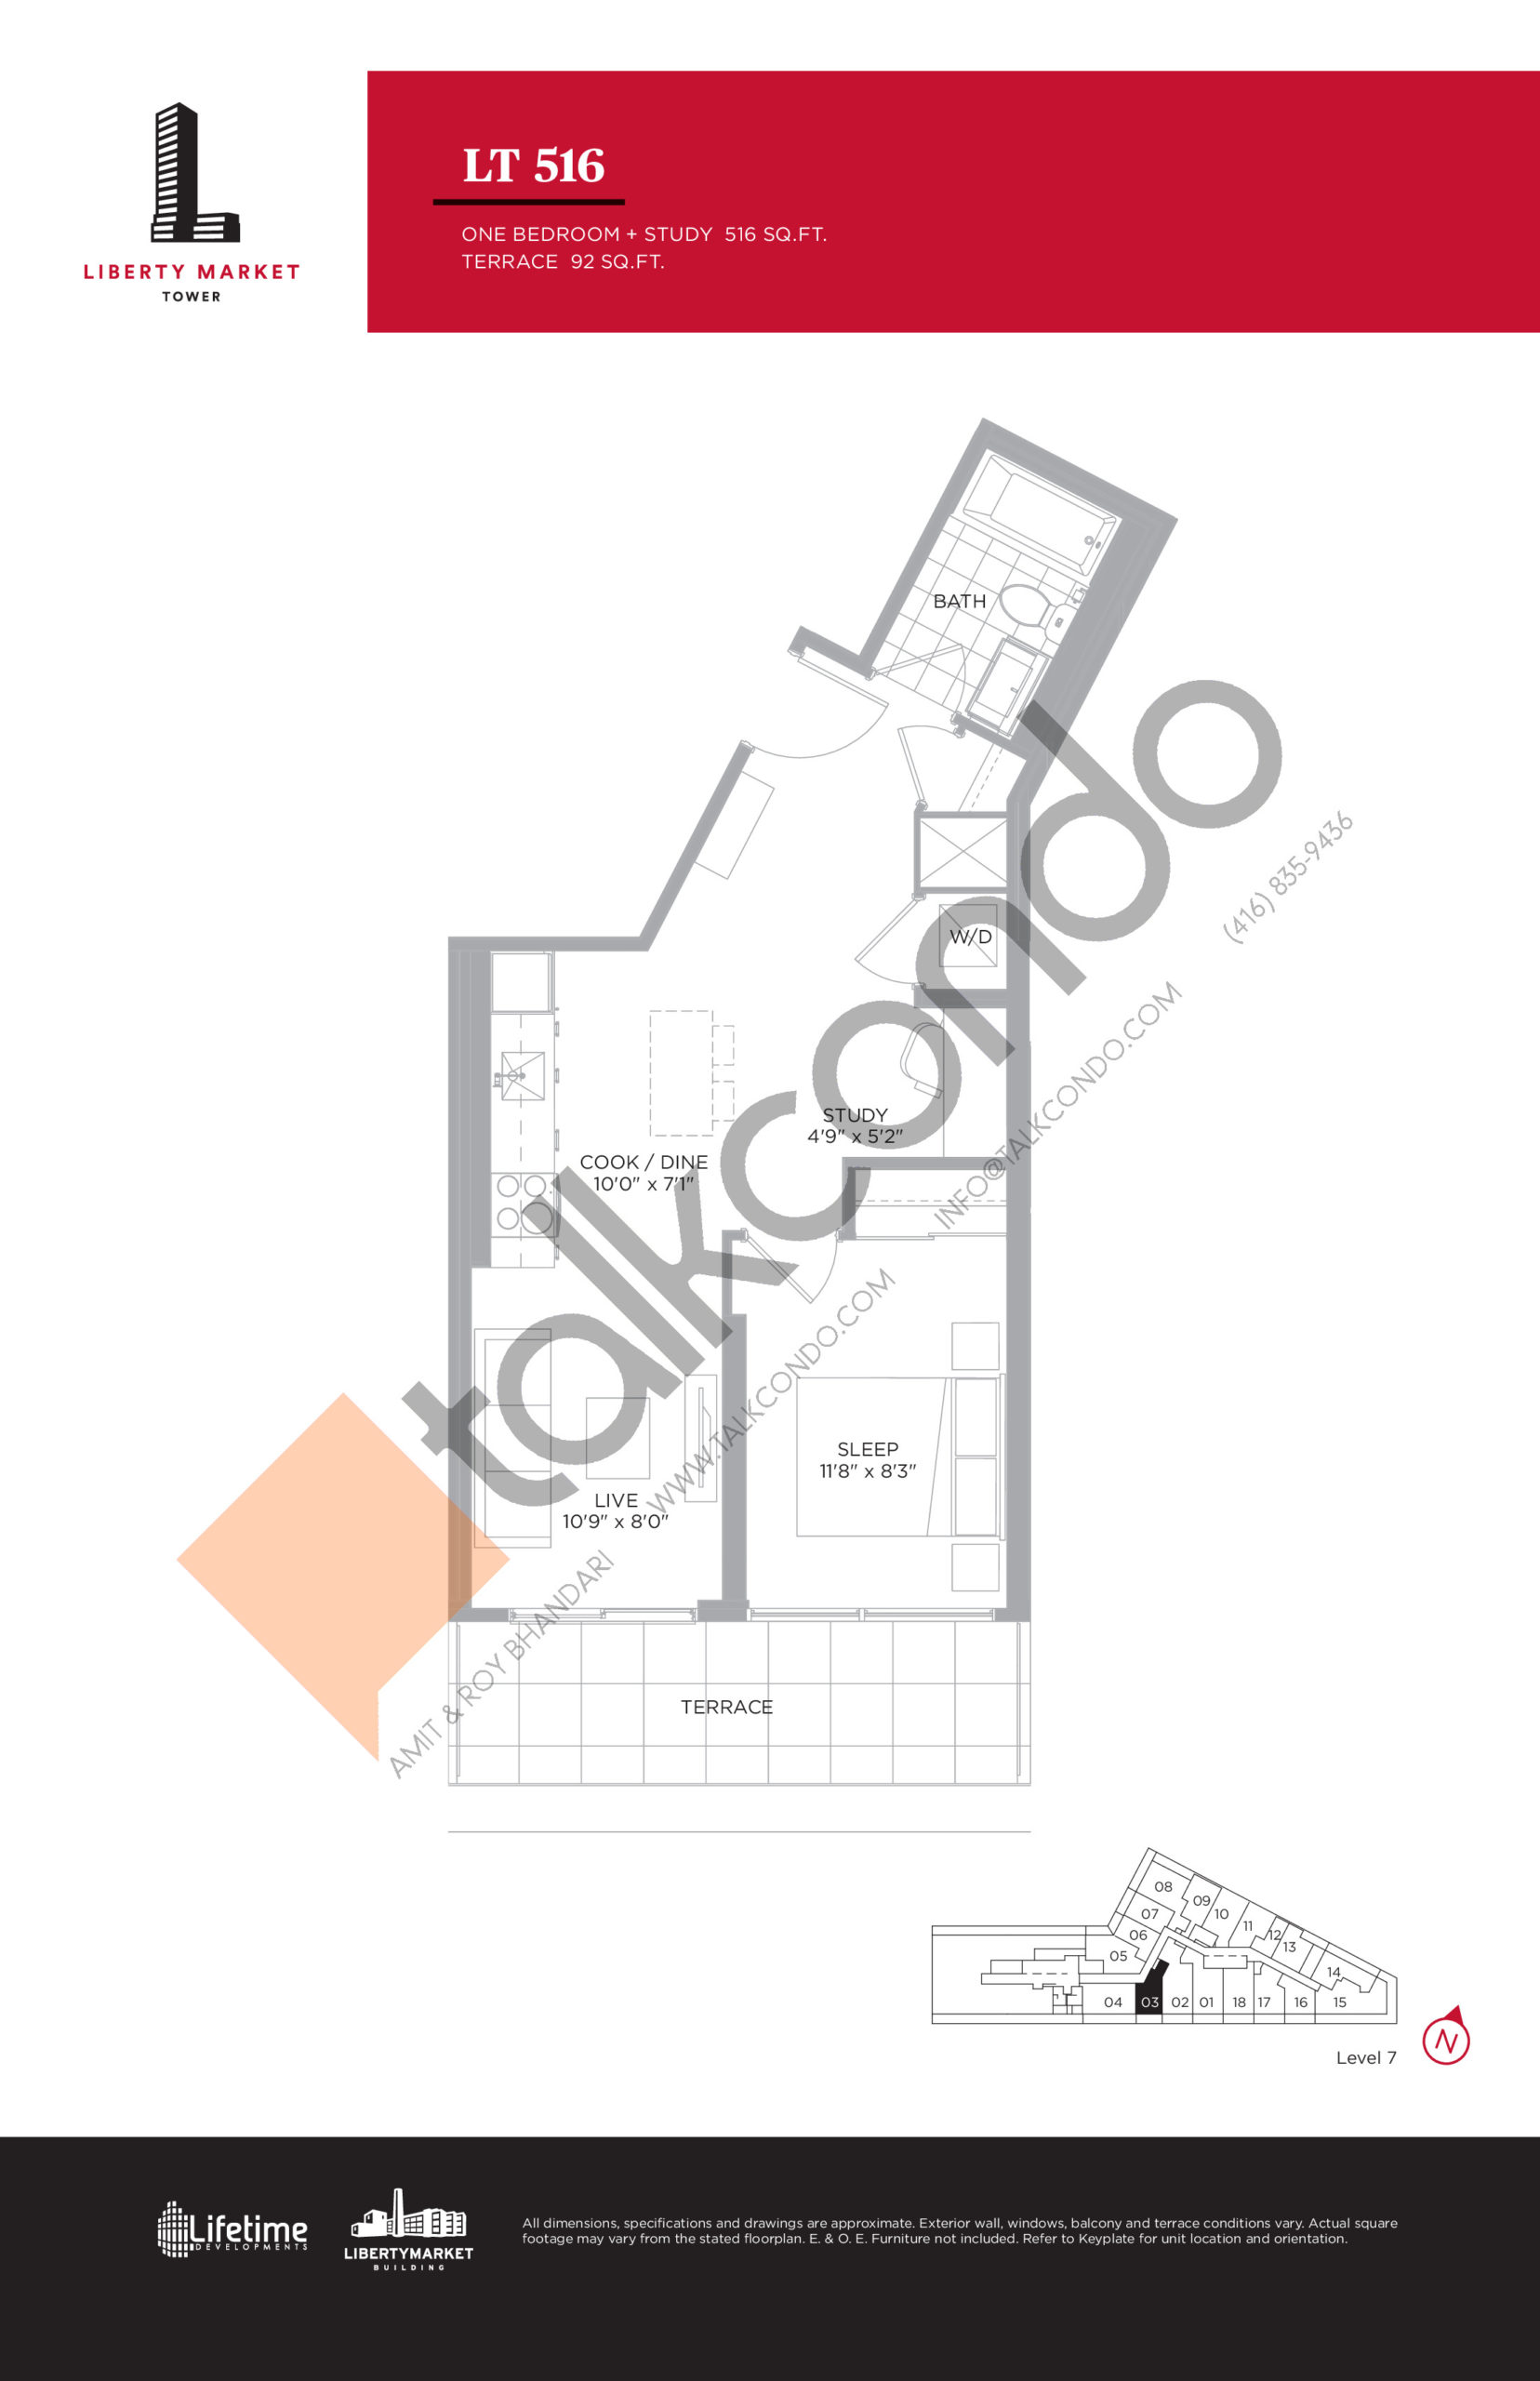 LT 516 - Terrace Collection Floor Plan at Liberty Market Tower Condos - 516 sq.ft